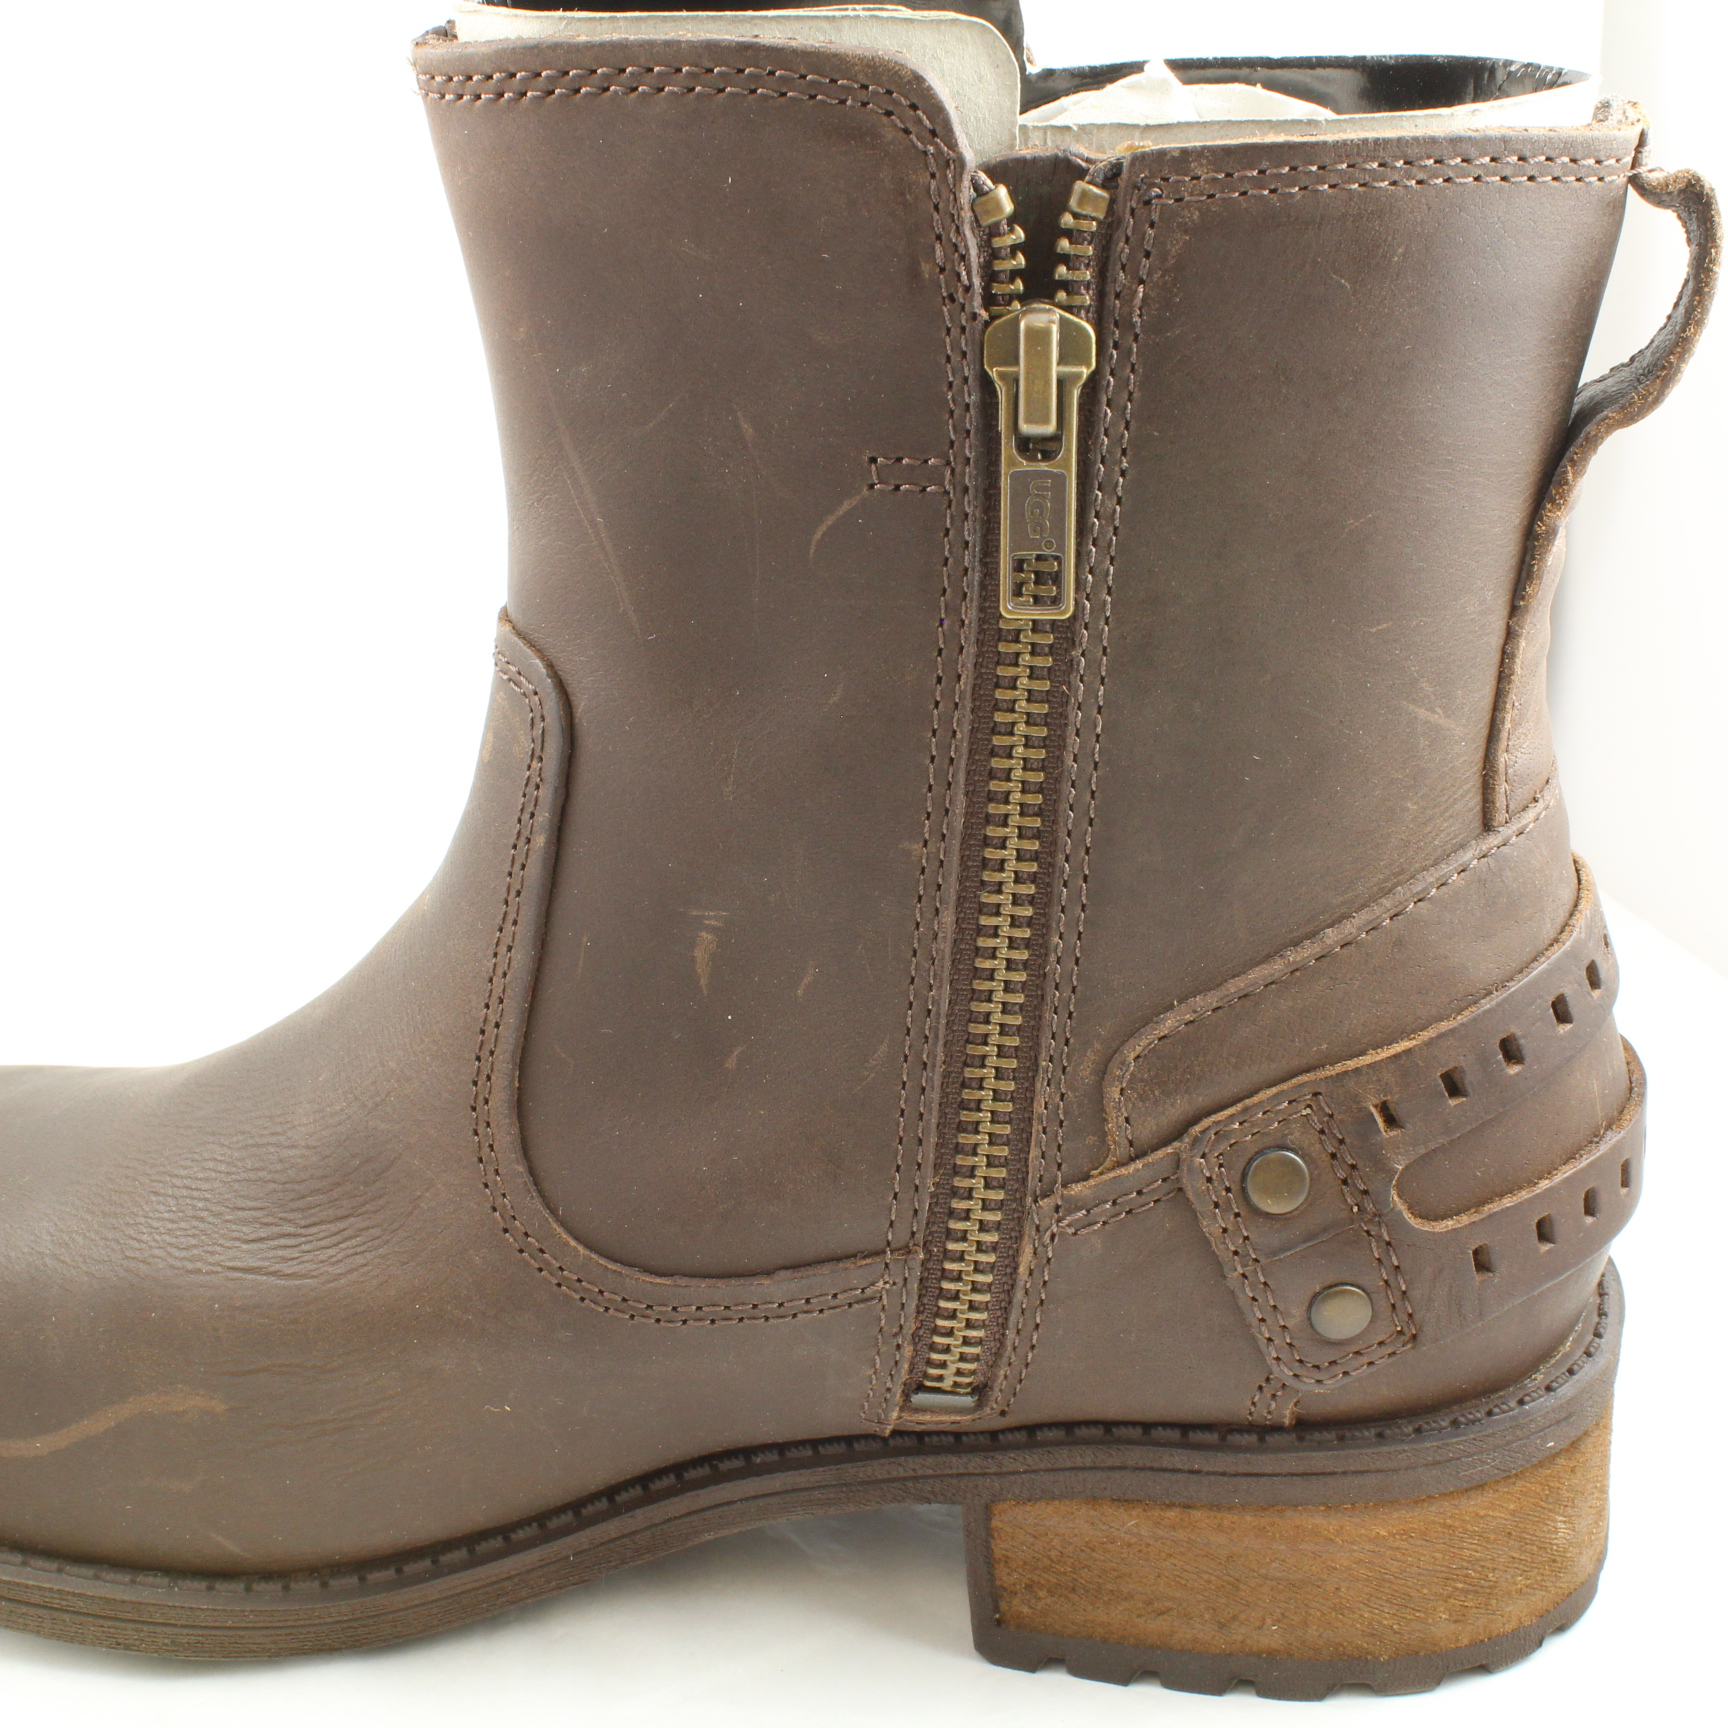 a2dce426a08 Brown Leather Ugg Boots Office - cheap watches mgc-gas.com